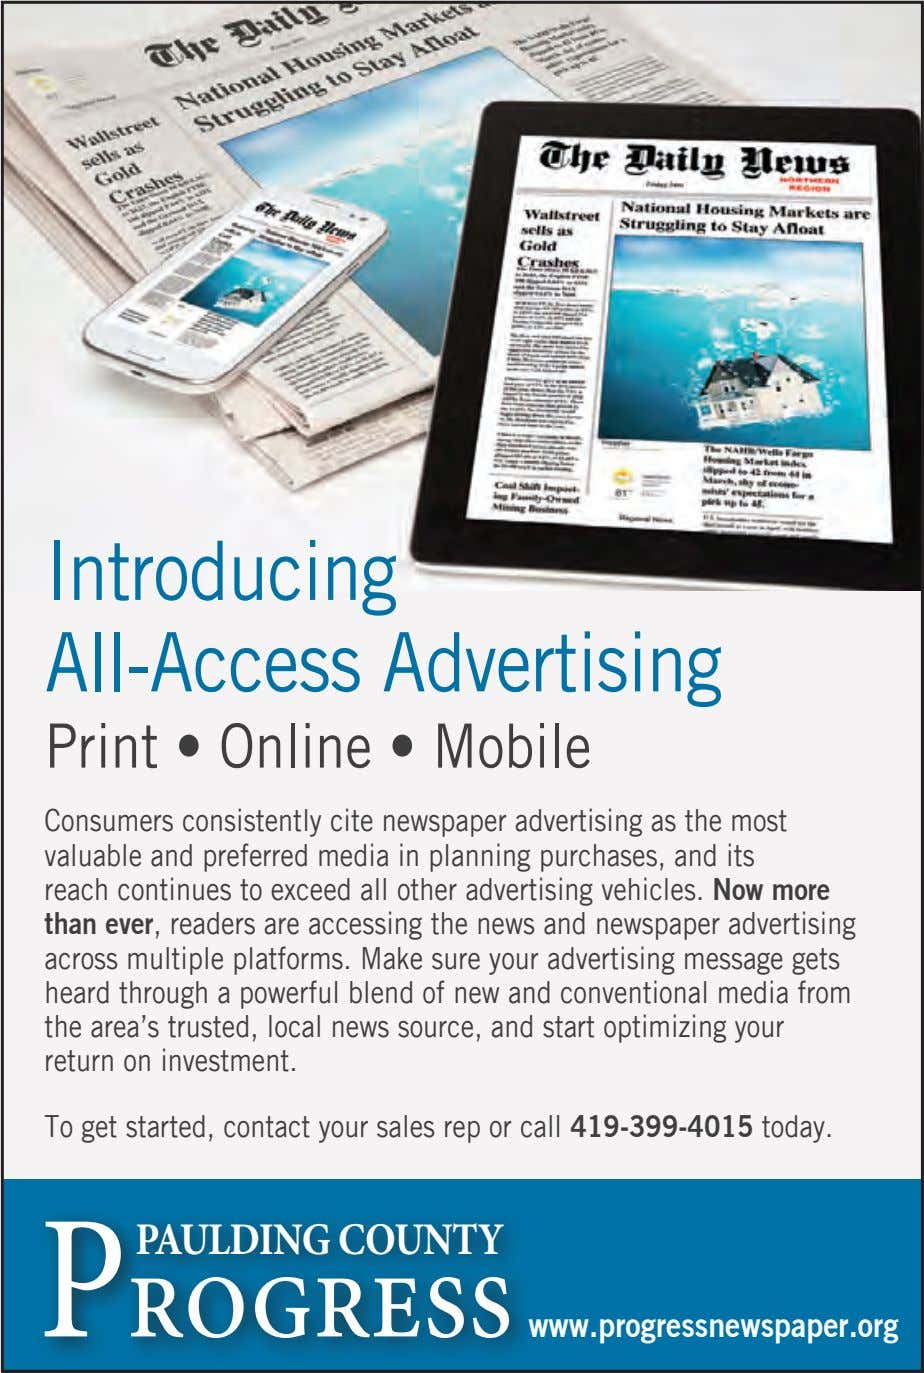 Introducing All-Access Advertising Print • Online • Mobile Consumers consistently cite newspaper advertising as the